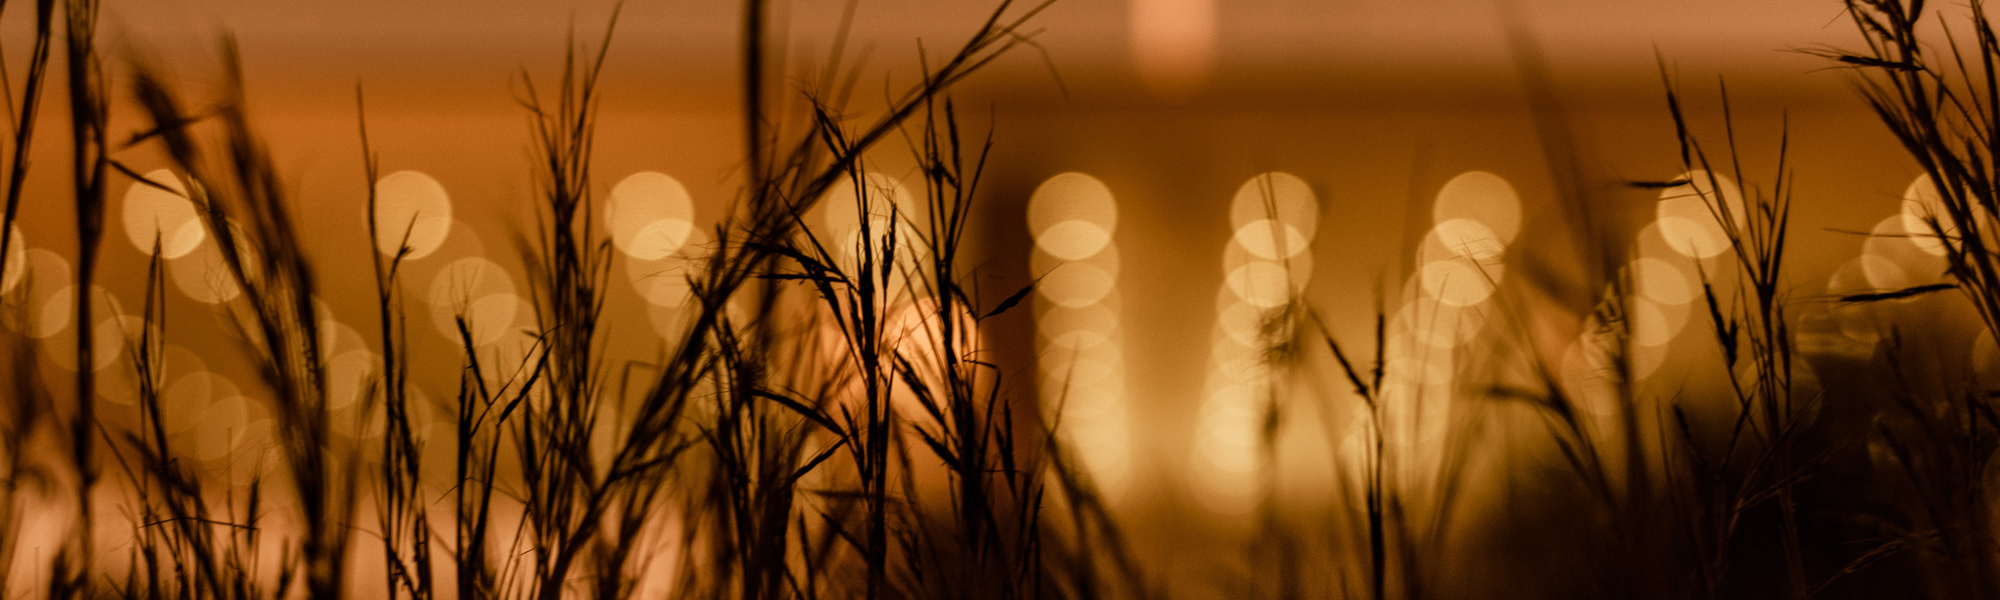 Grass at night with gold lights behind. Photo by Manos Gkikas on Unsplash